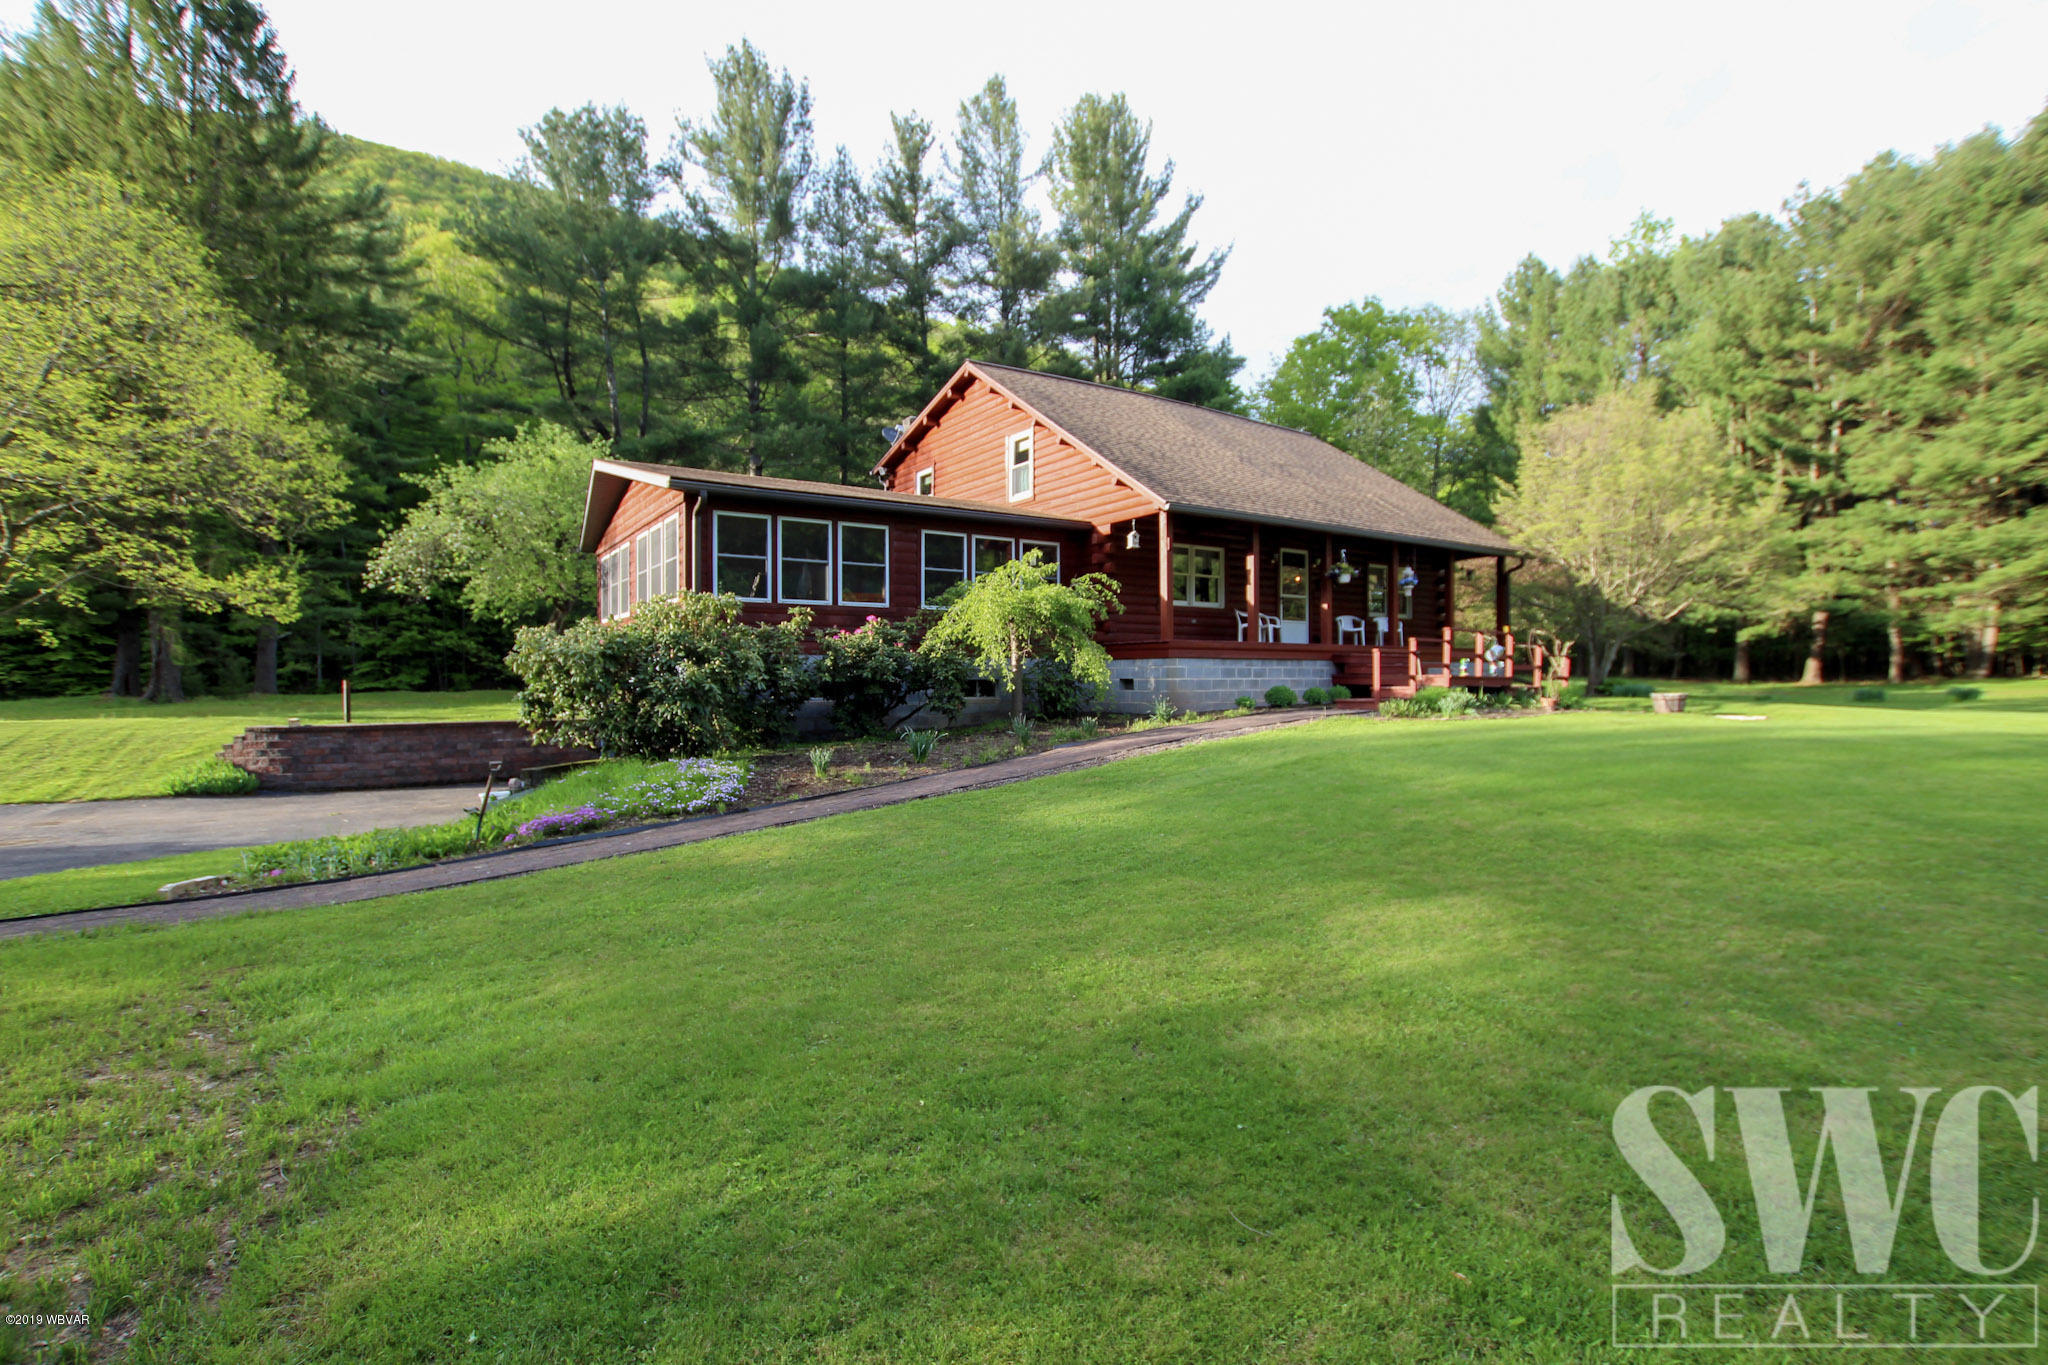 1591 PLEASANT STREAM ROAD,Trout Run,PA 17771,2 Bedrooms Bedrooms,1 BathroomBathrooms,Cabin/vacation home,PLEASANT STREAM,WB-87385